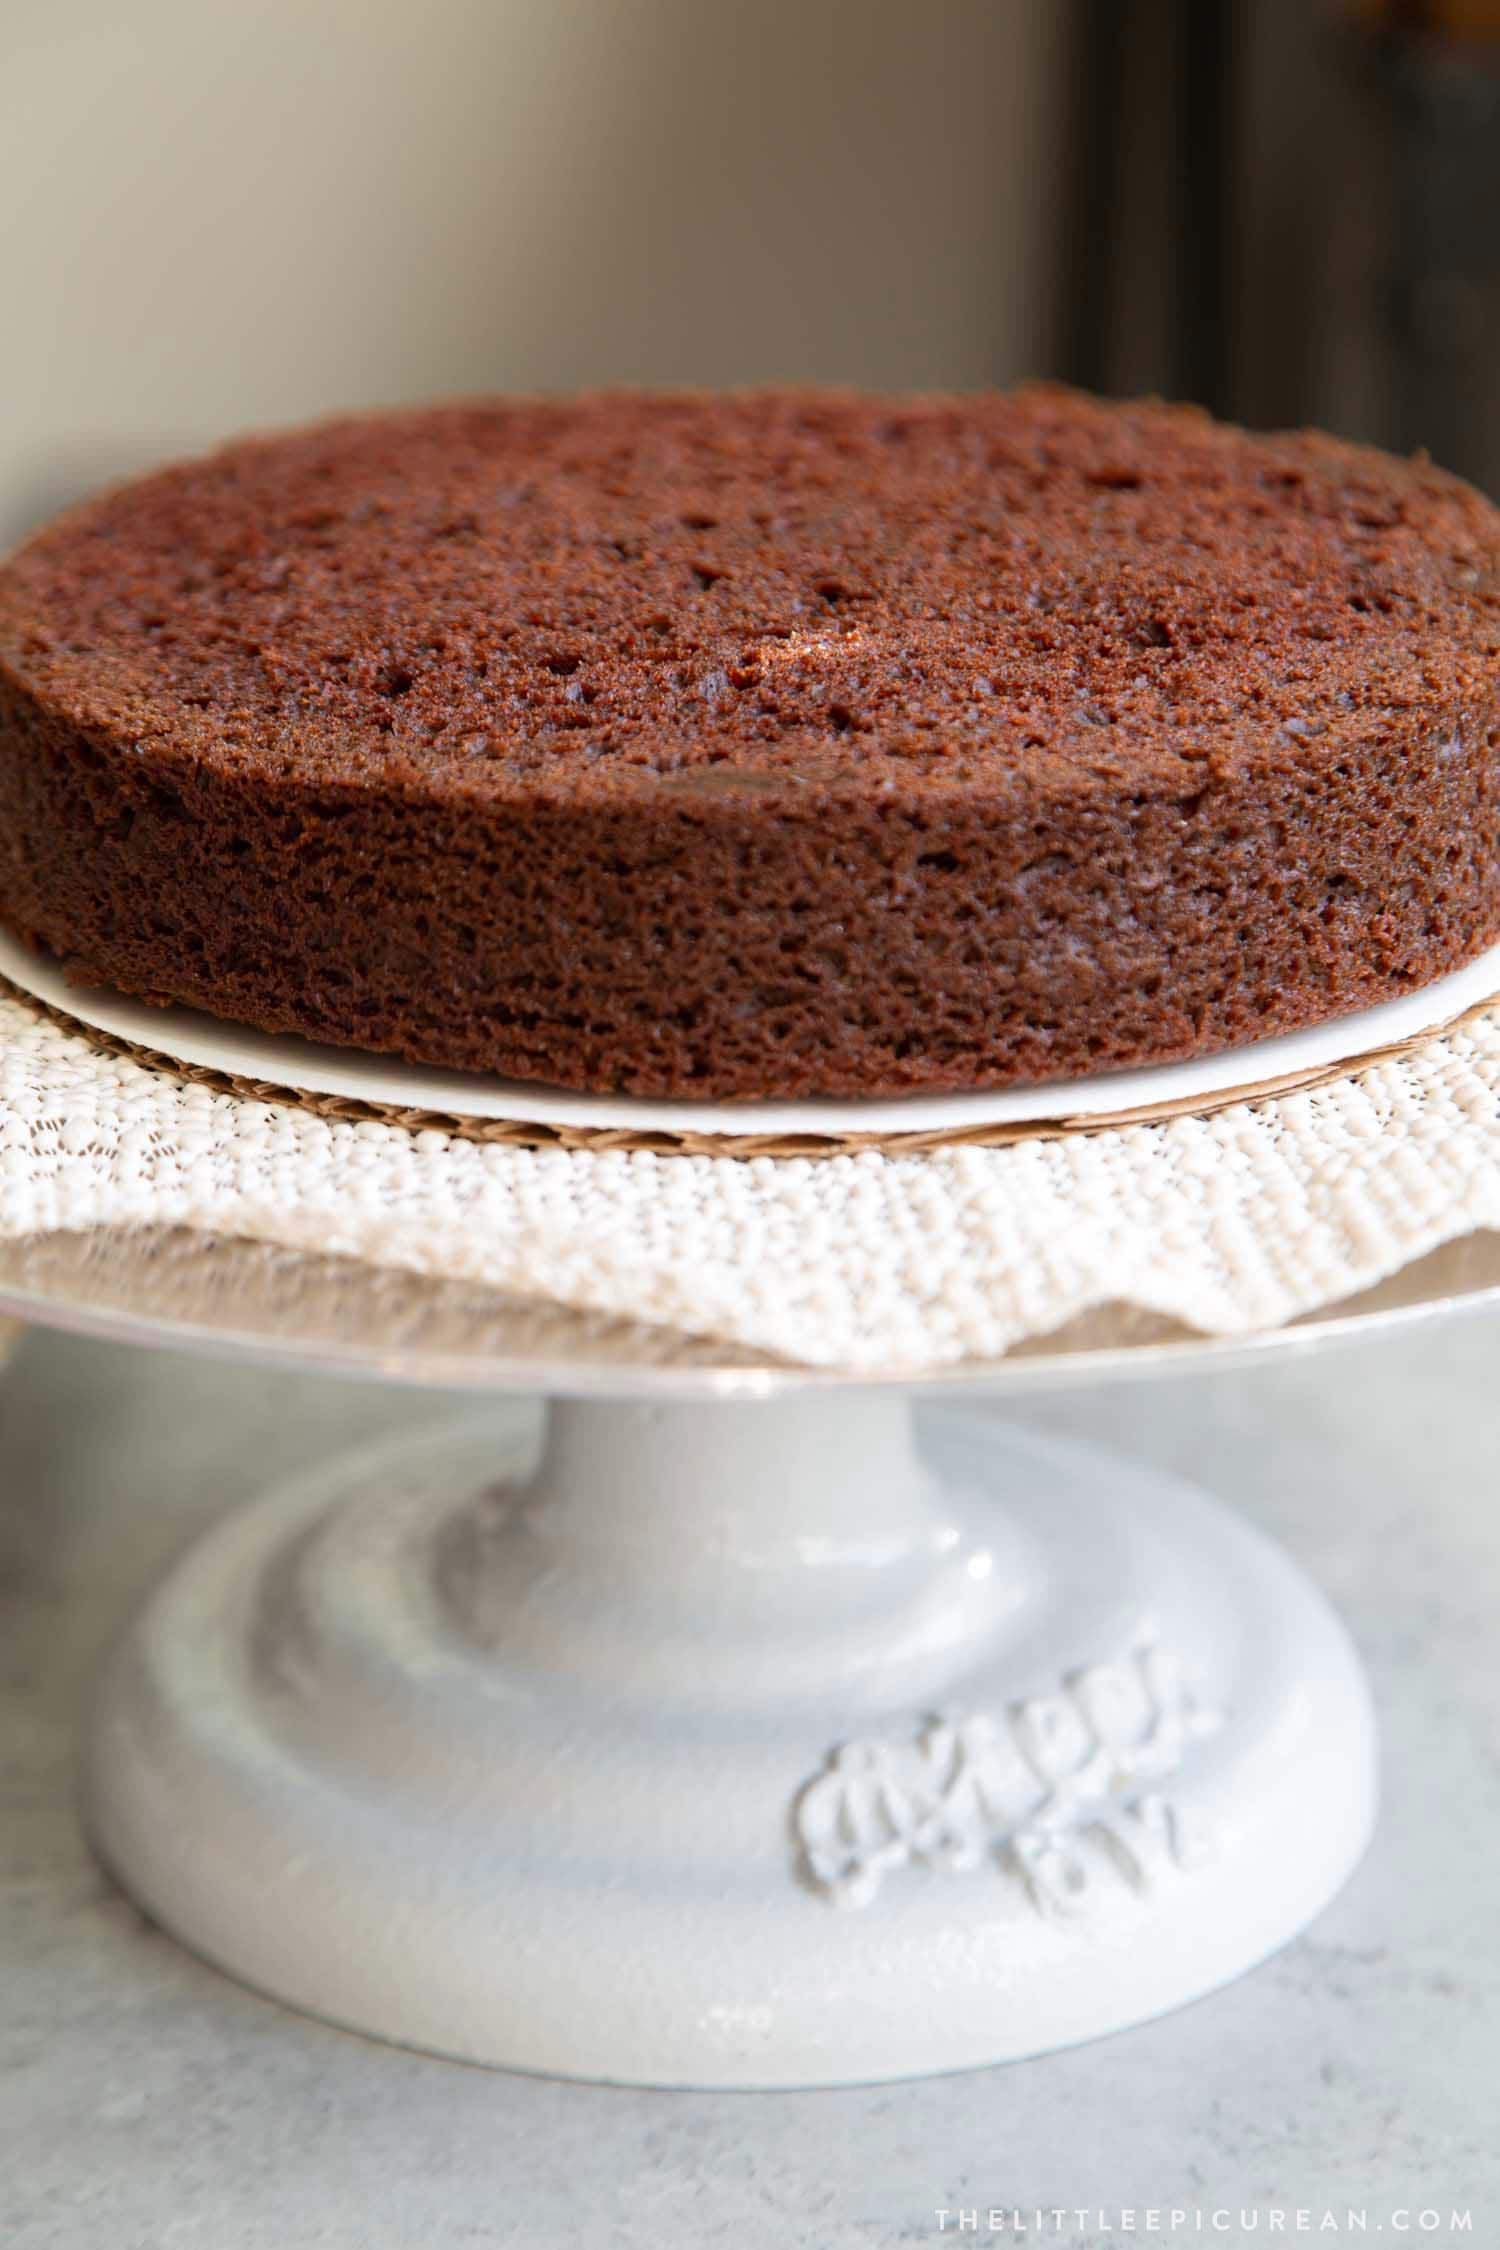 How to assemble classic chocolate cake.